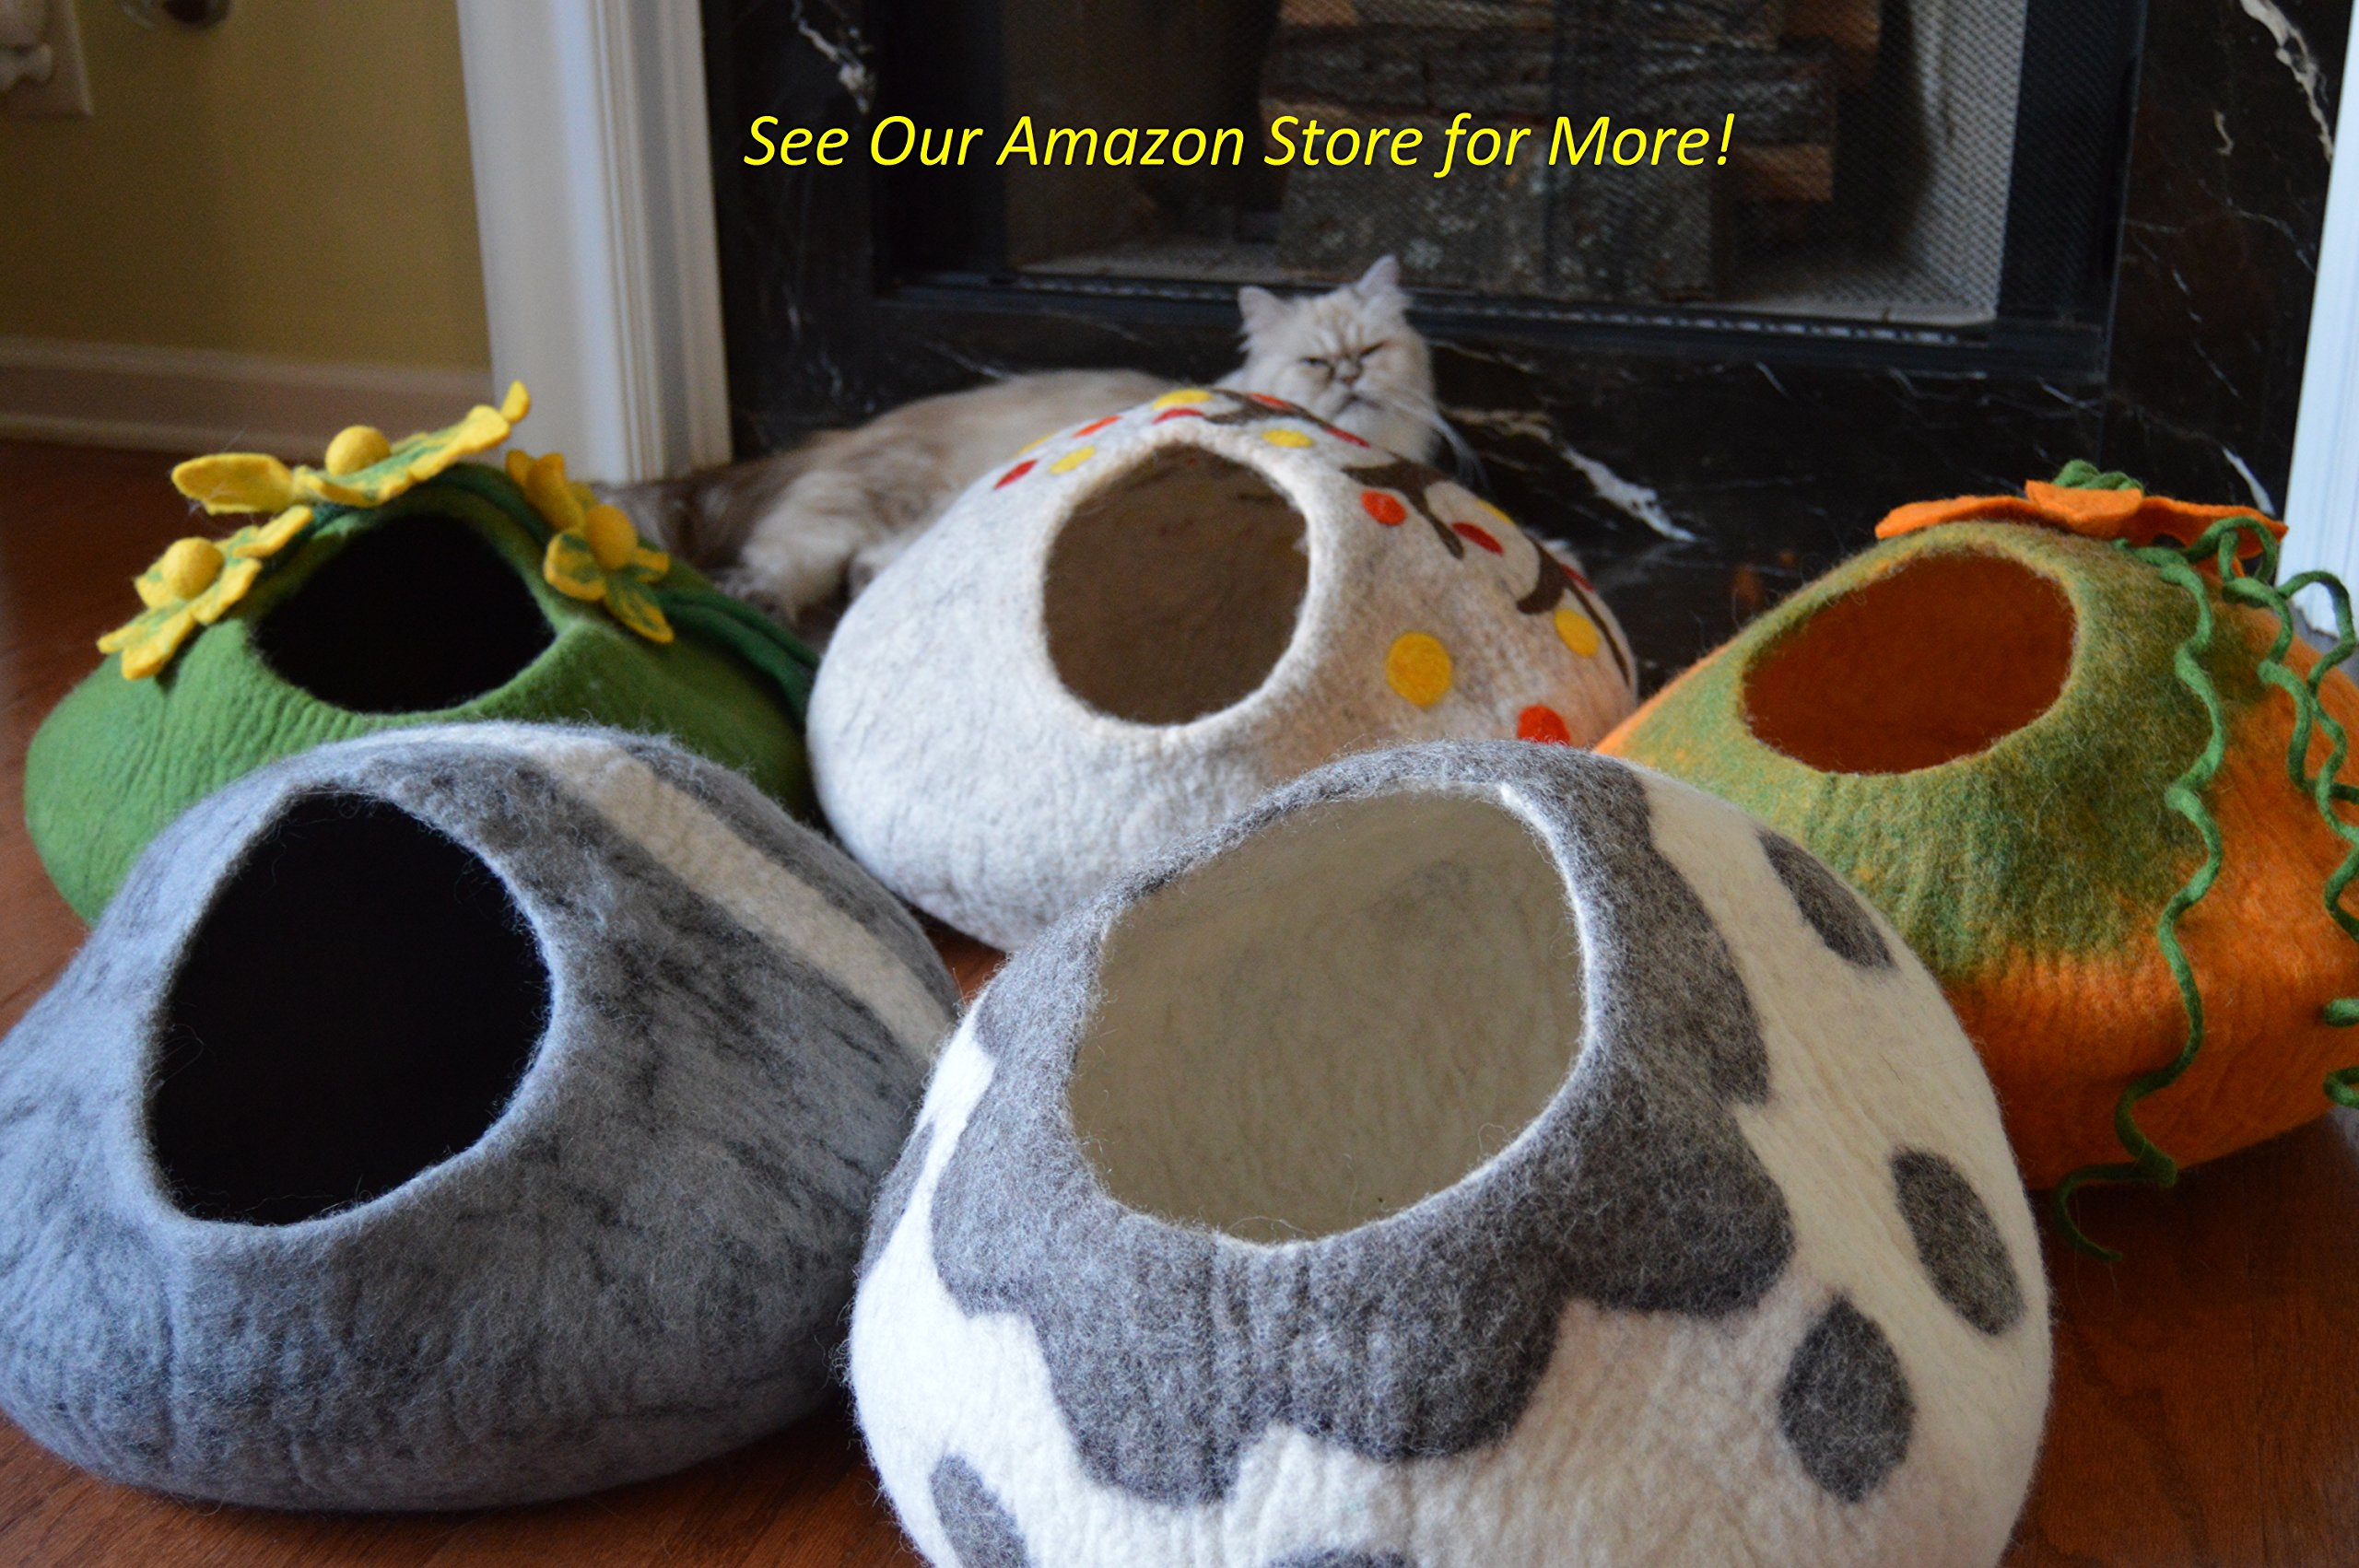 Best Cat Cave Bed, Unique Handmade Natural Felted Merino Wool, Large Covered and Cozy, Also Perfect for Kittens, Includes Bonus Catnip, Original Cat Caves, By Earthtone Solutions (Cushy Casa) by Earthtone Solutions (Image #6)